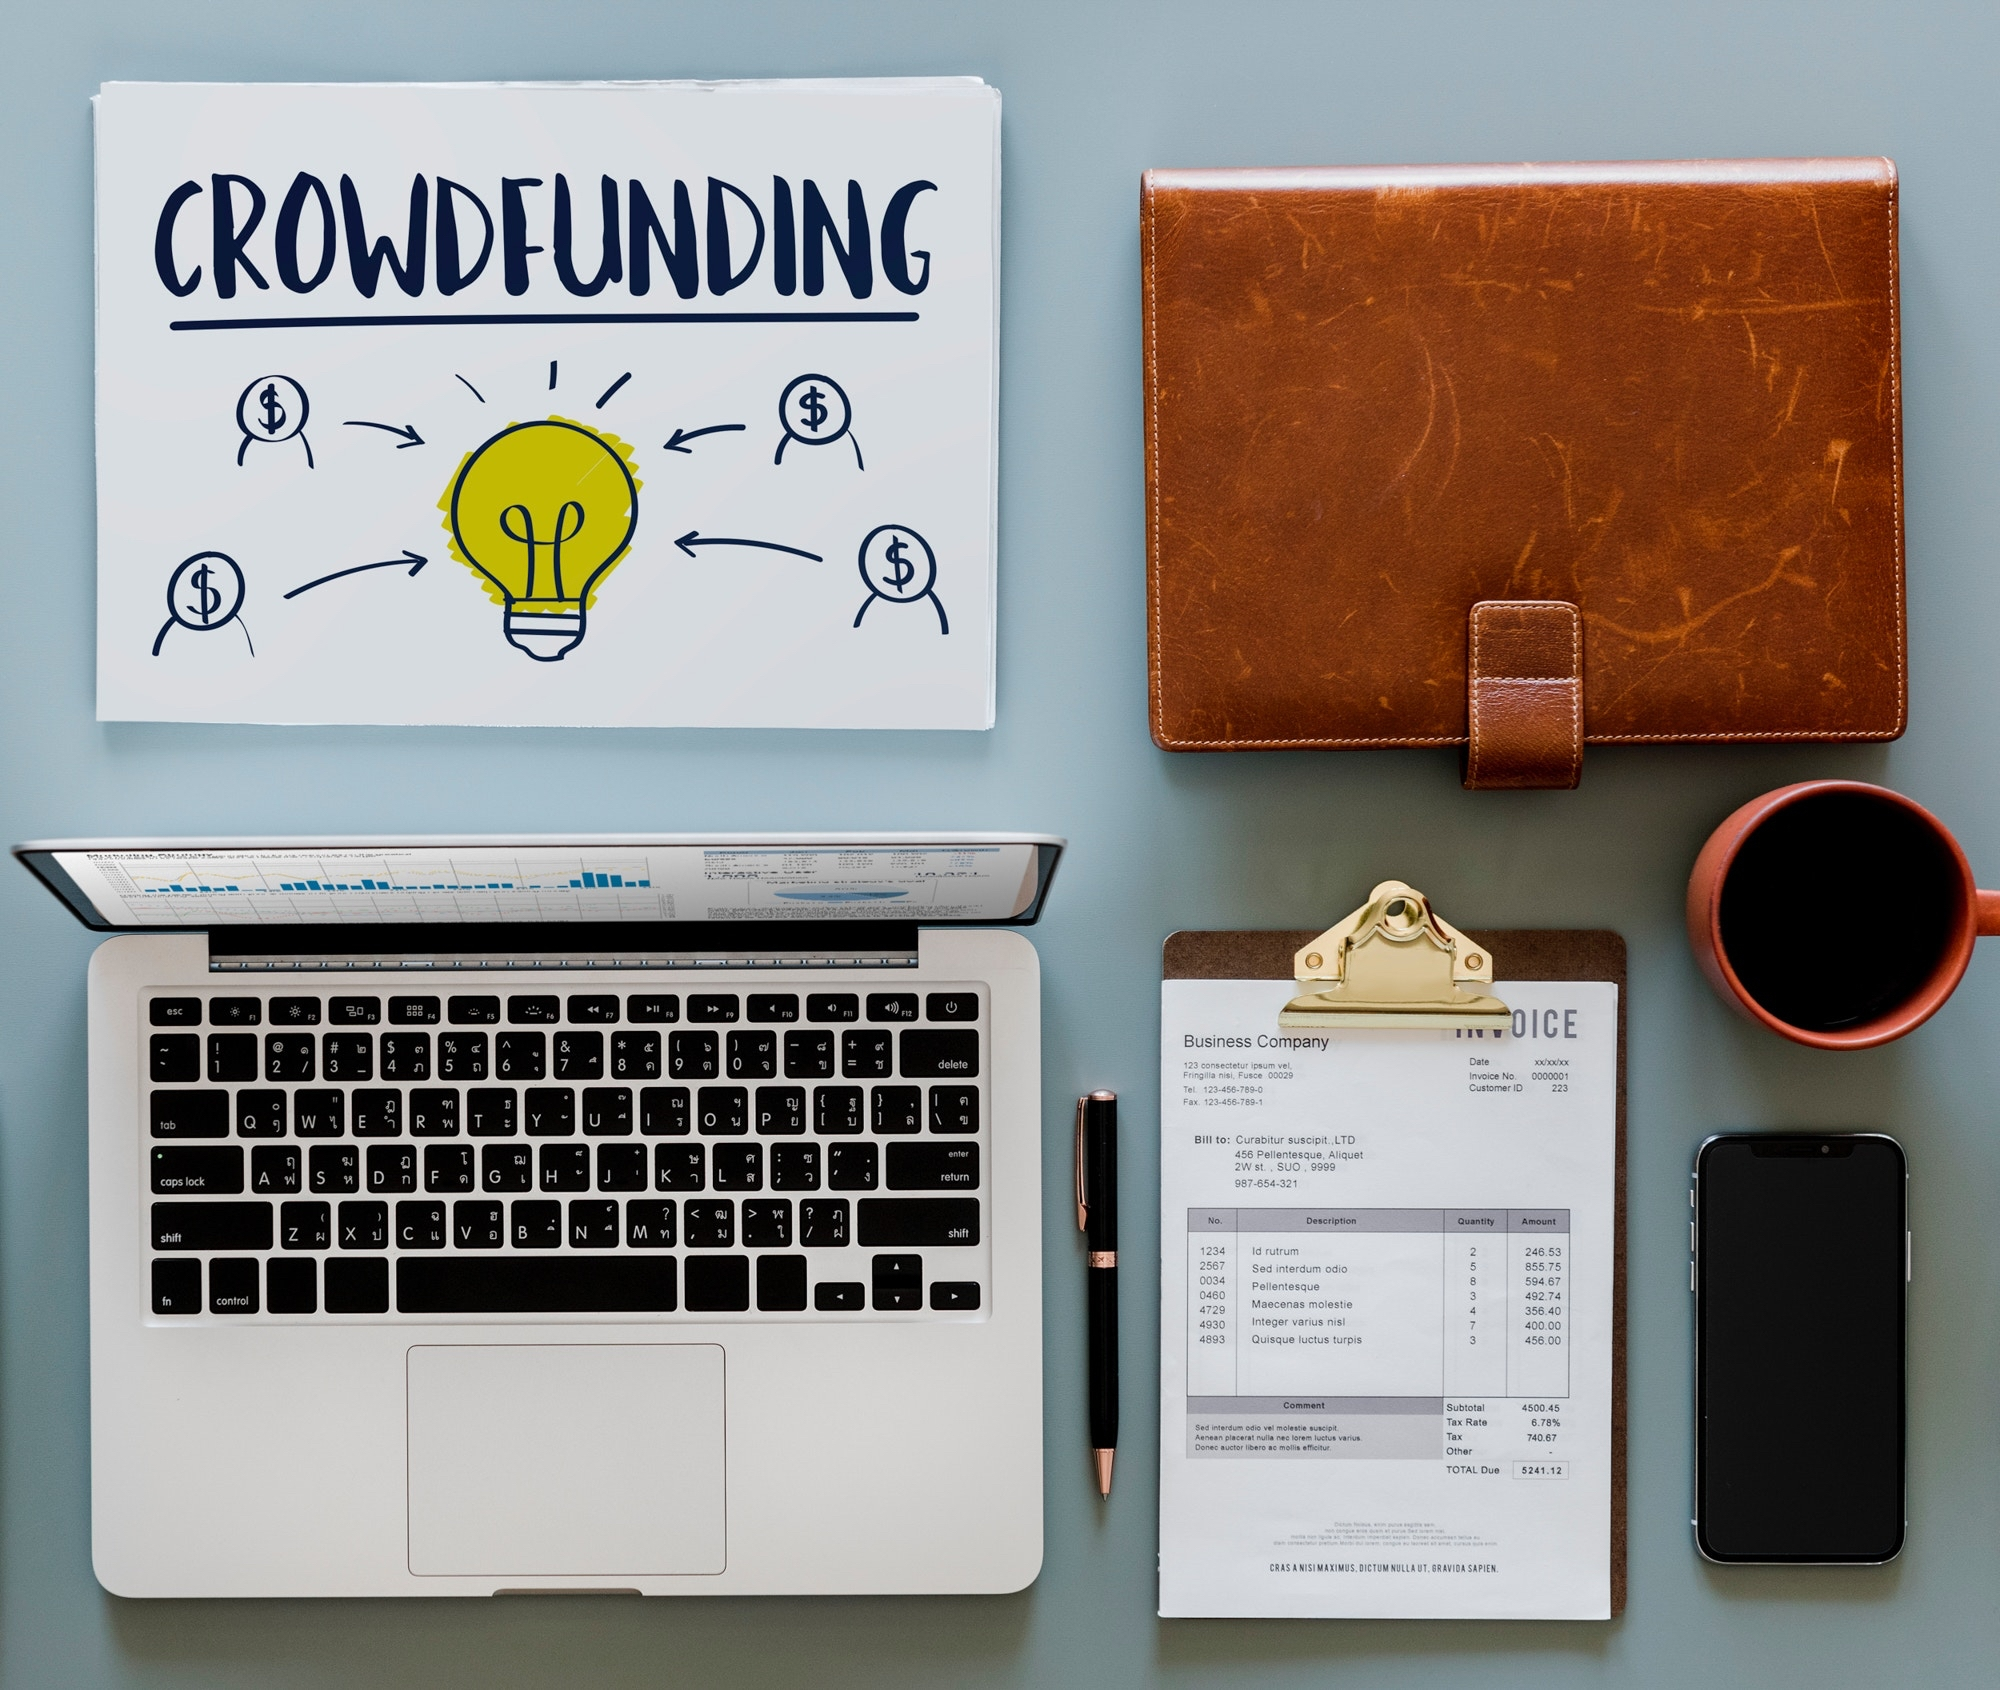 Crowdfunding in Real Estate: What does this mean? -